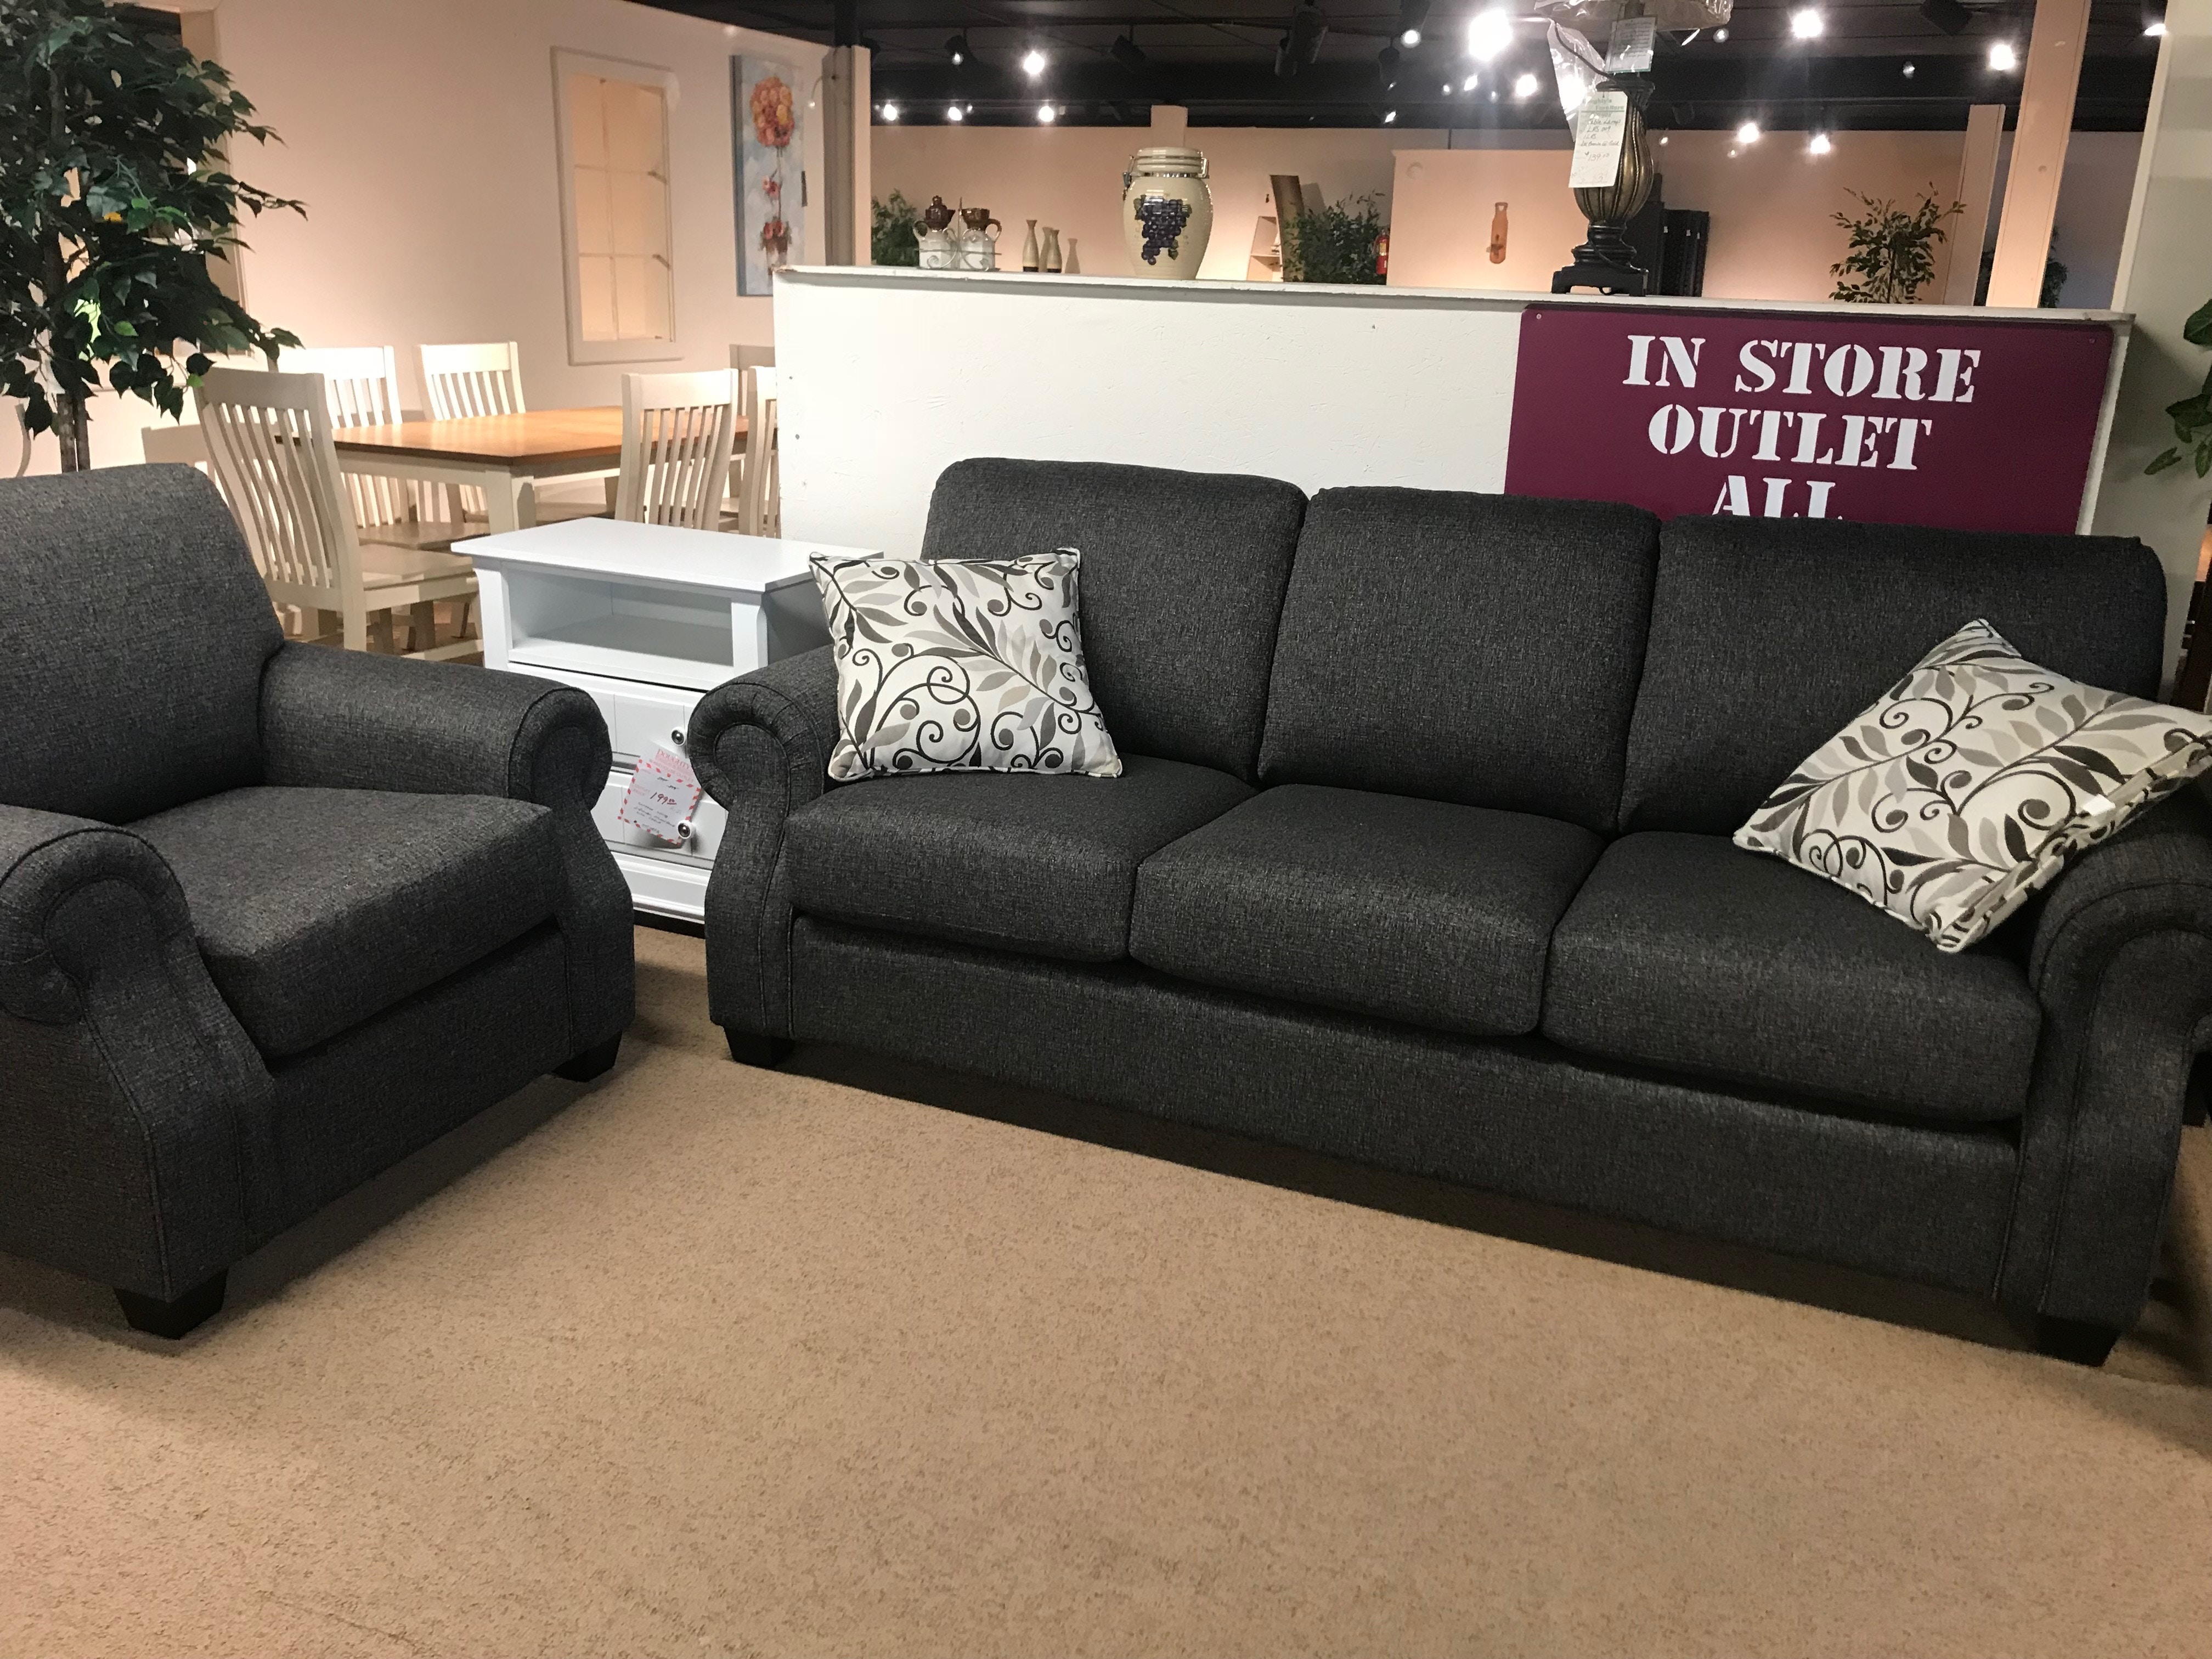 Decor Rest Living Room Sofa And Chair Clearance Price For 2 Pieces